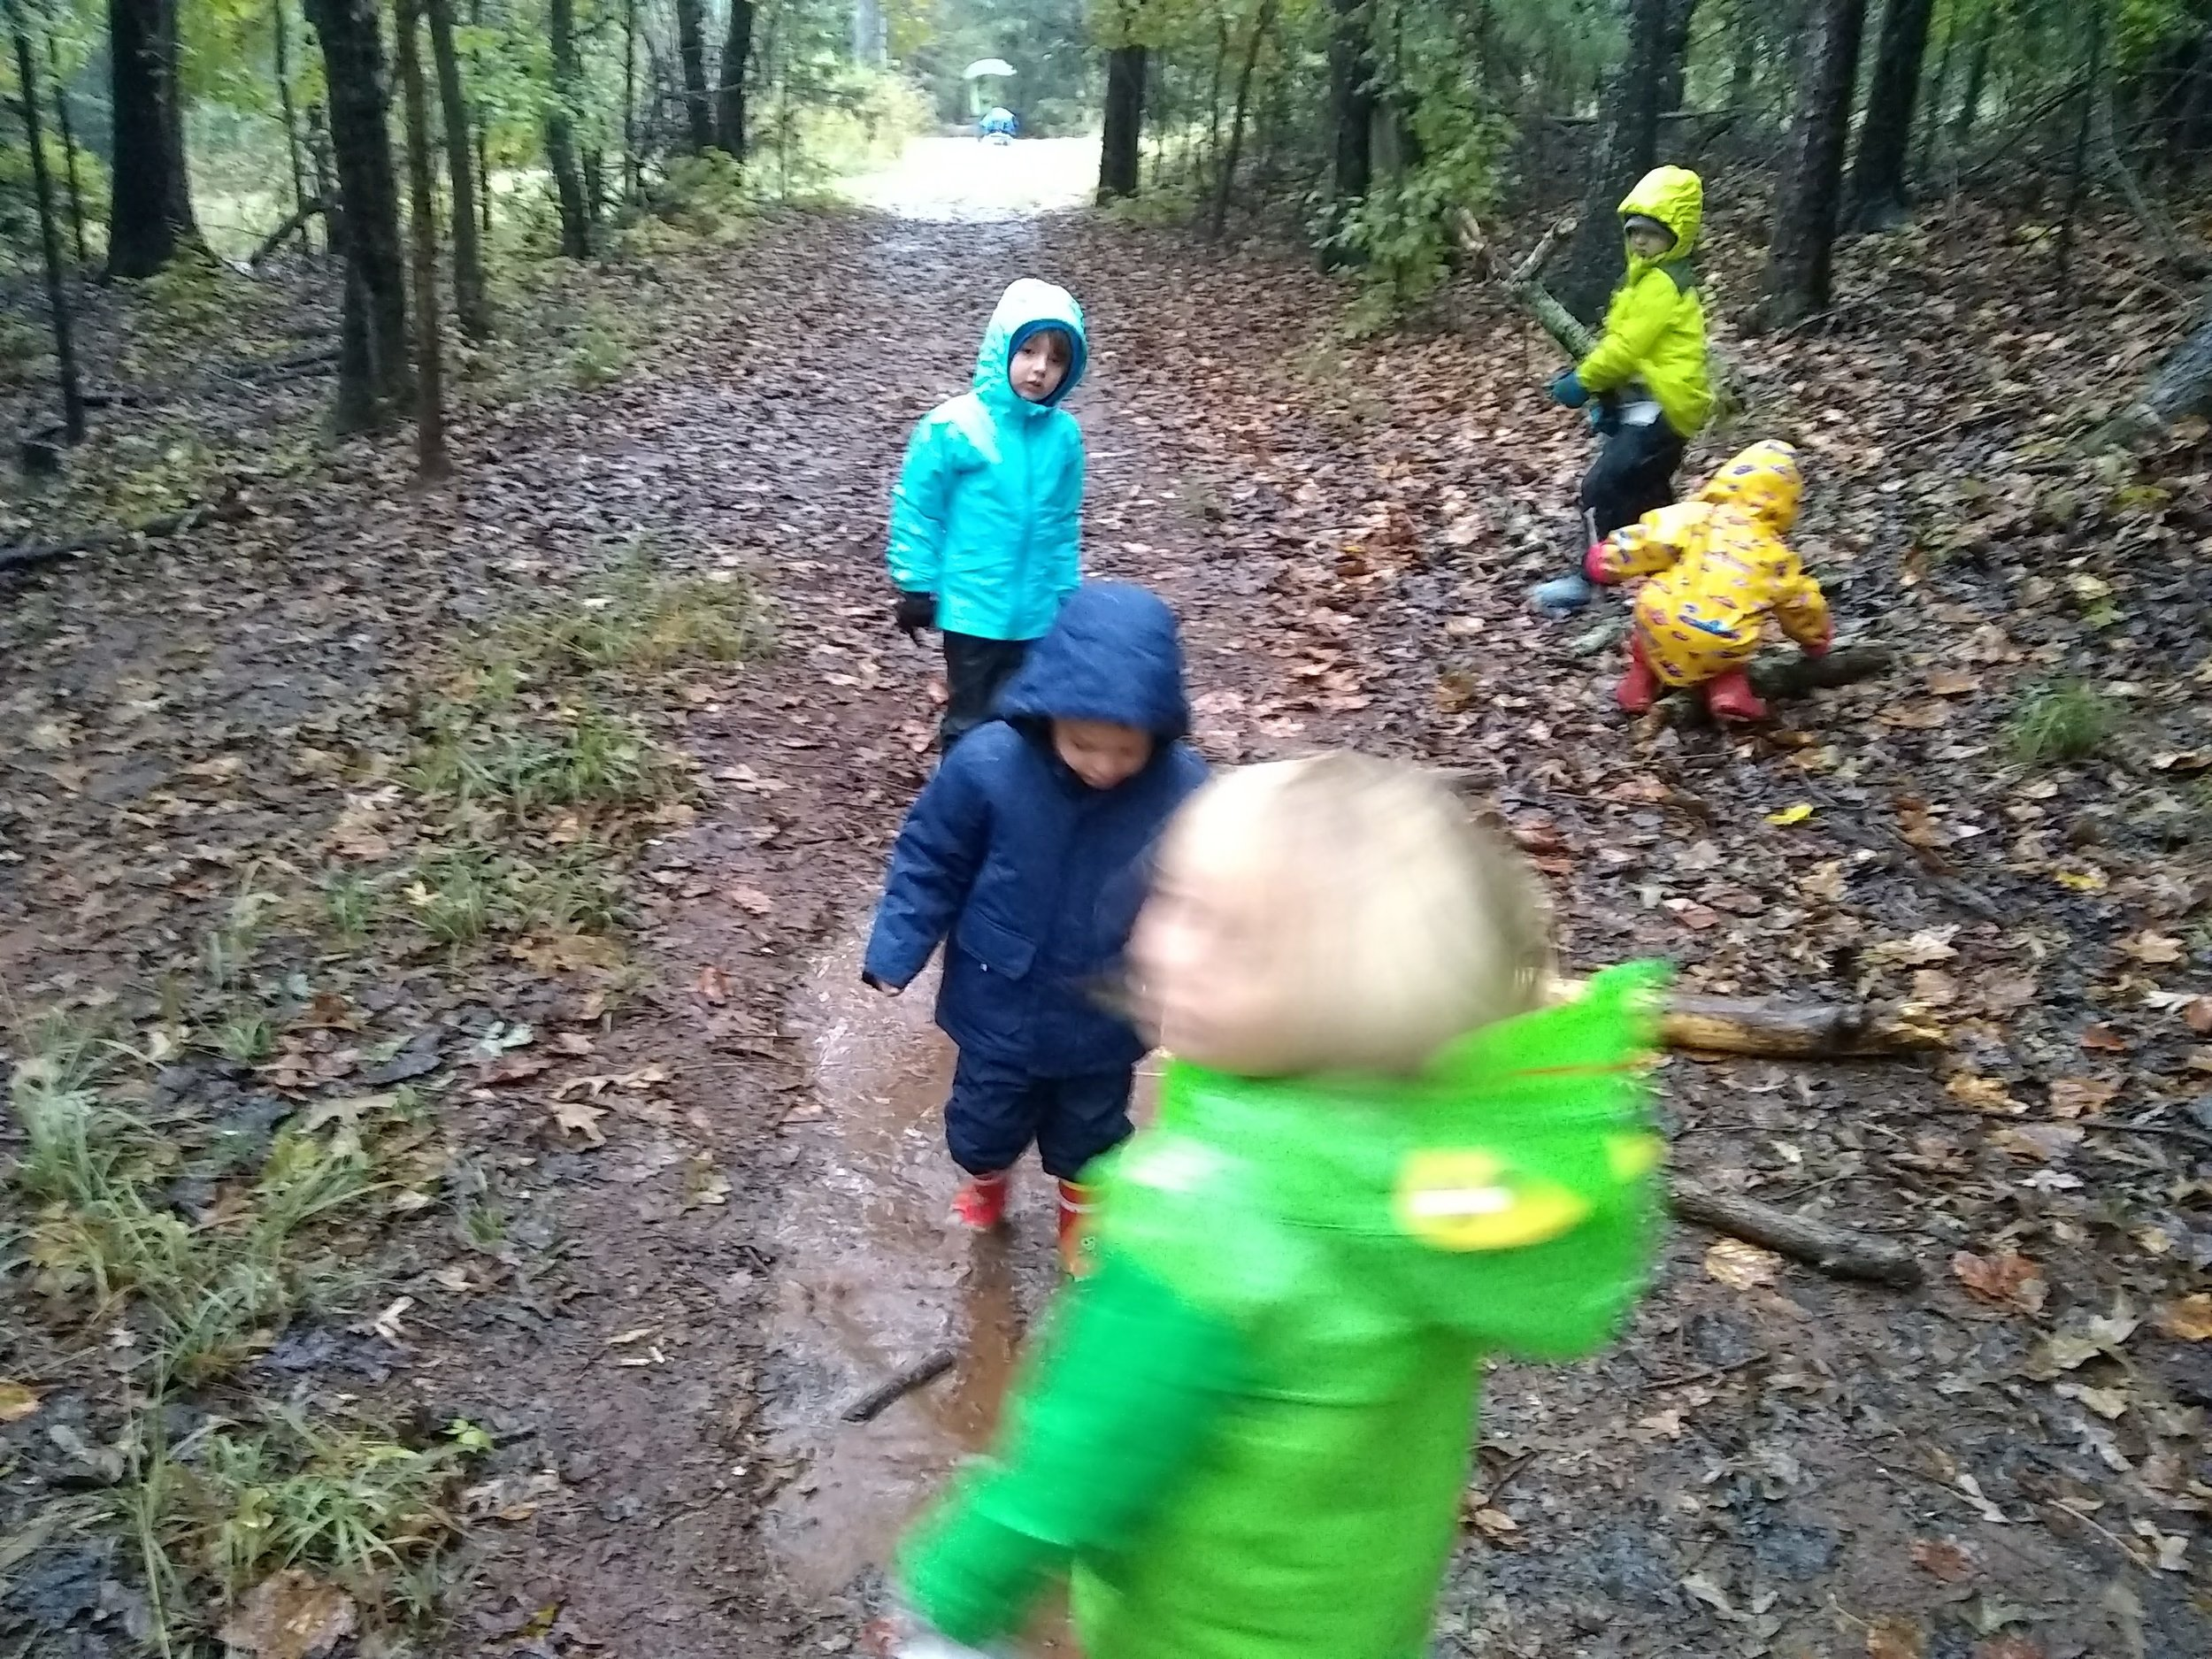 The children experienced so much wonder and cheer about the elements, thanks to the positive messages of parents dropping them off for a day of rainy adventures.